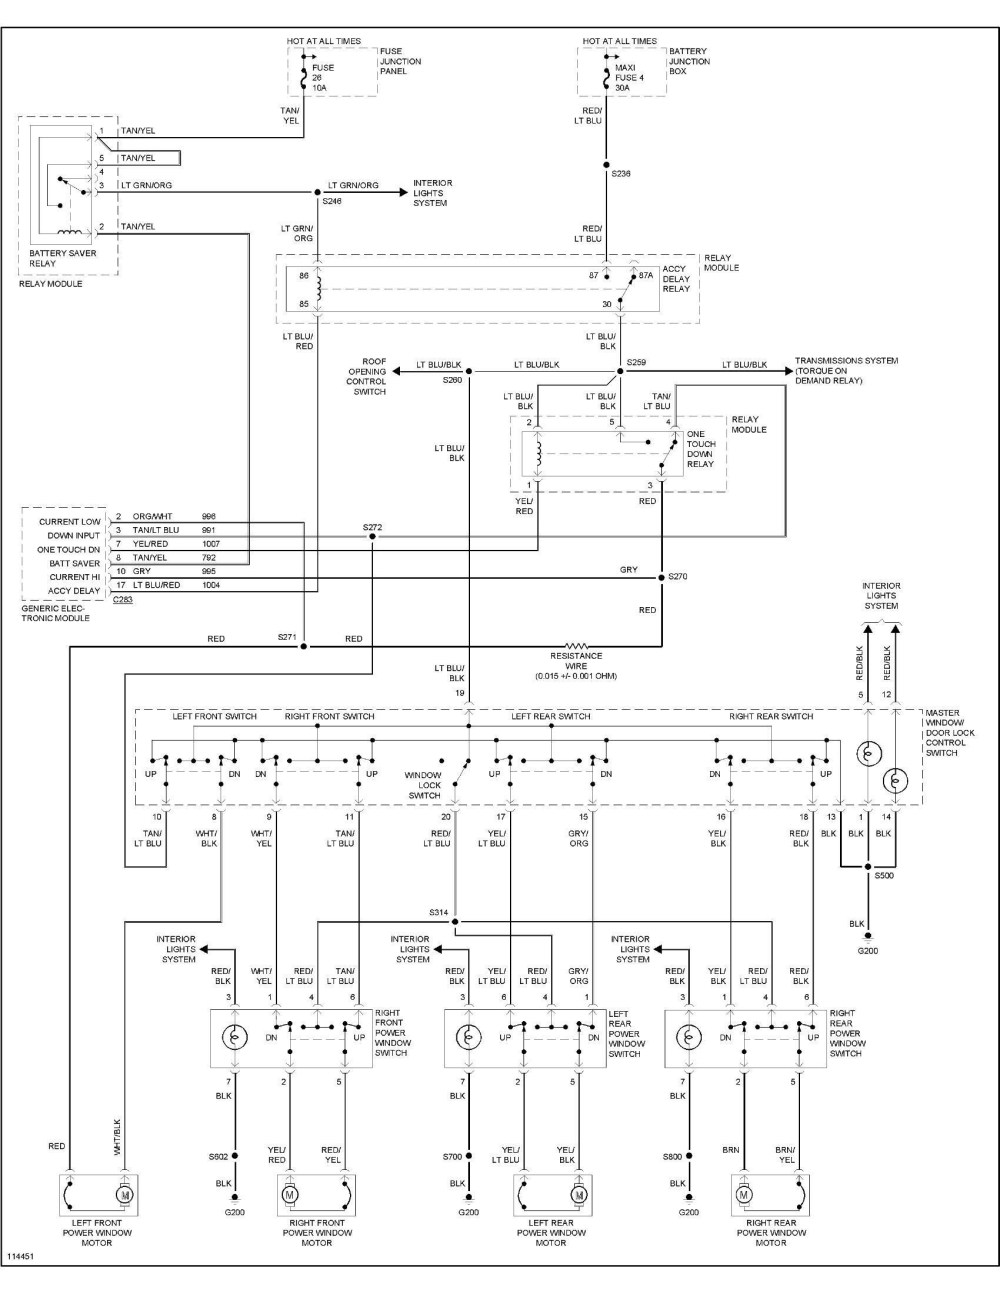 medium resolution of 2011 explorer wiring diagram wiring diagram technic diagram 1999 ford explorer engine diagram 2011 mitsubishi eclipsewrg